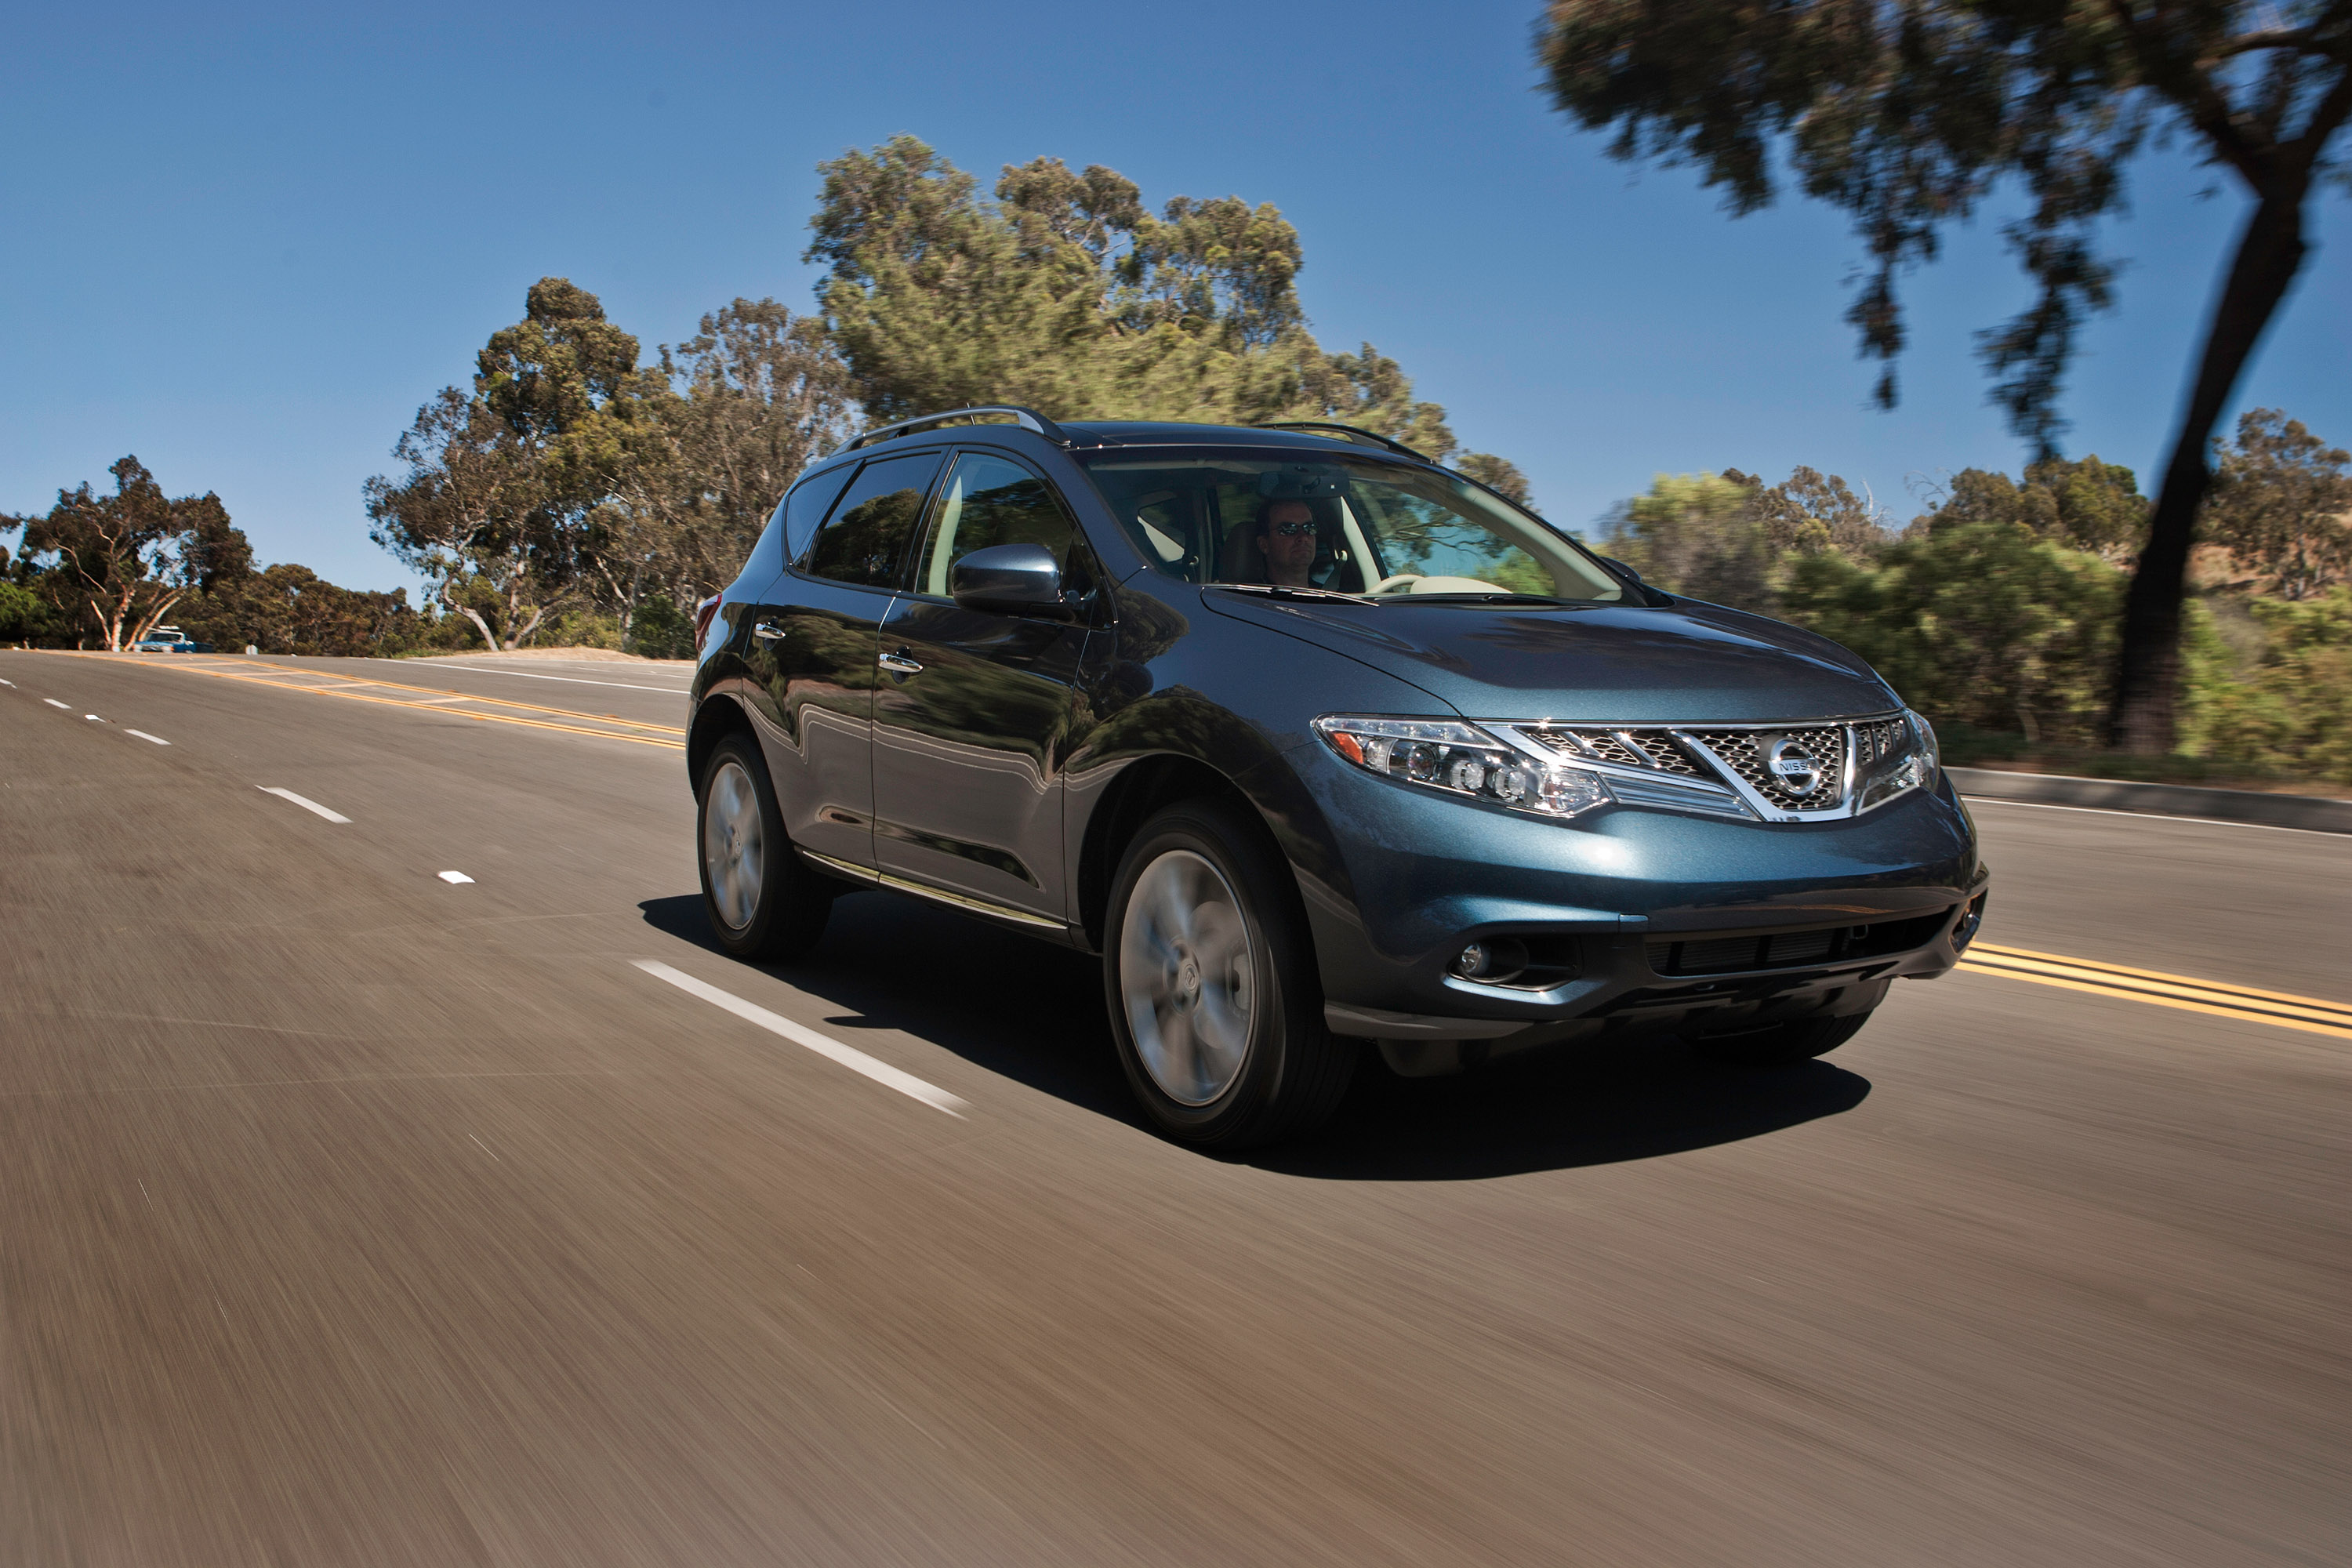 driven sl com classiccars journal nissan murano price